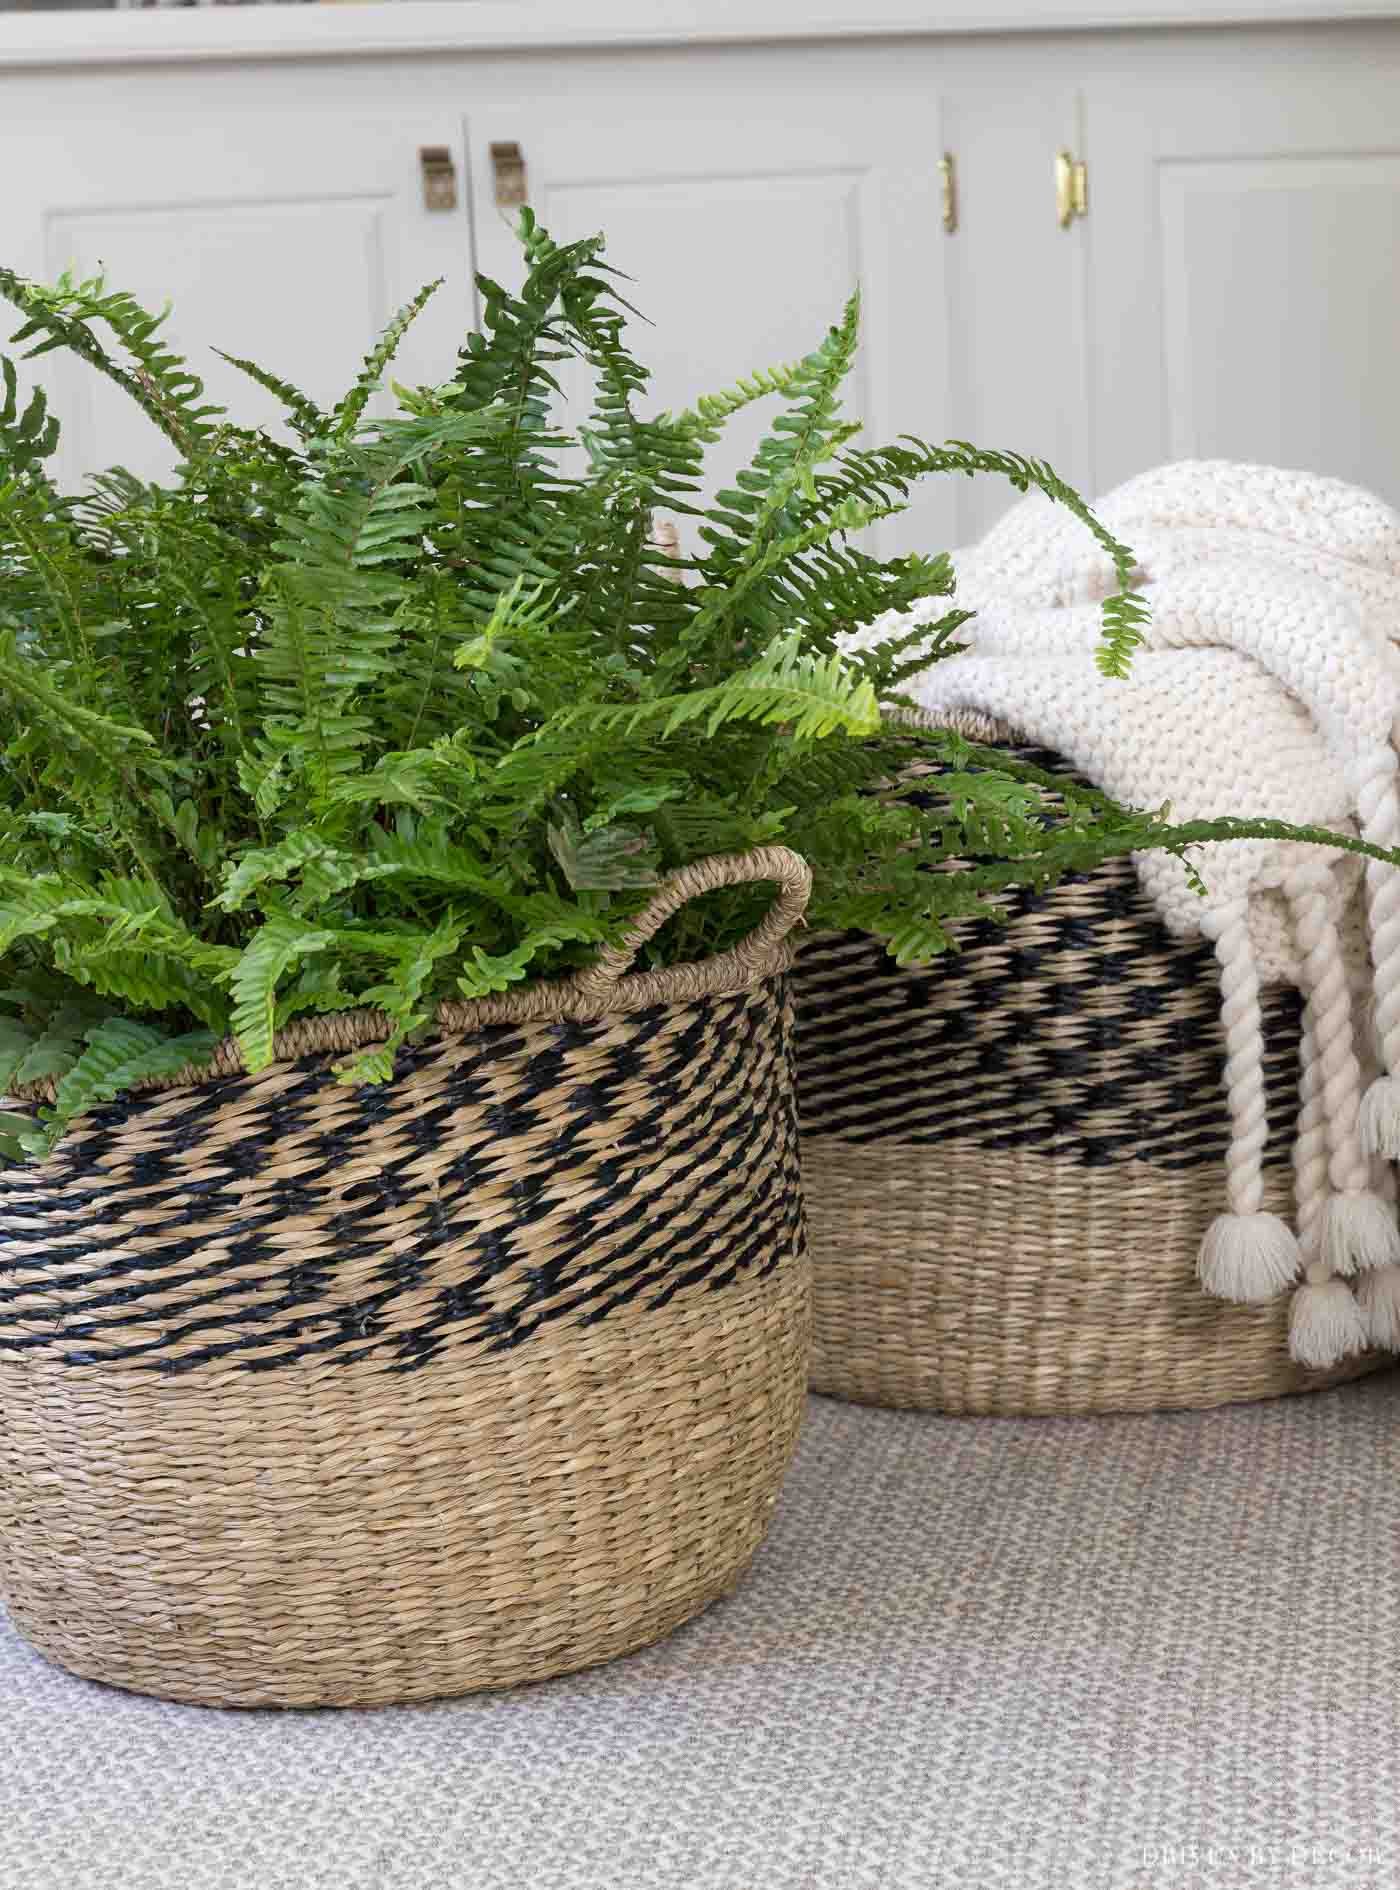 This pair of woven baskets is perfect fall decor for our family room!